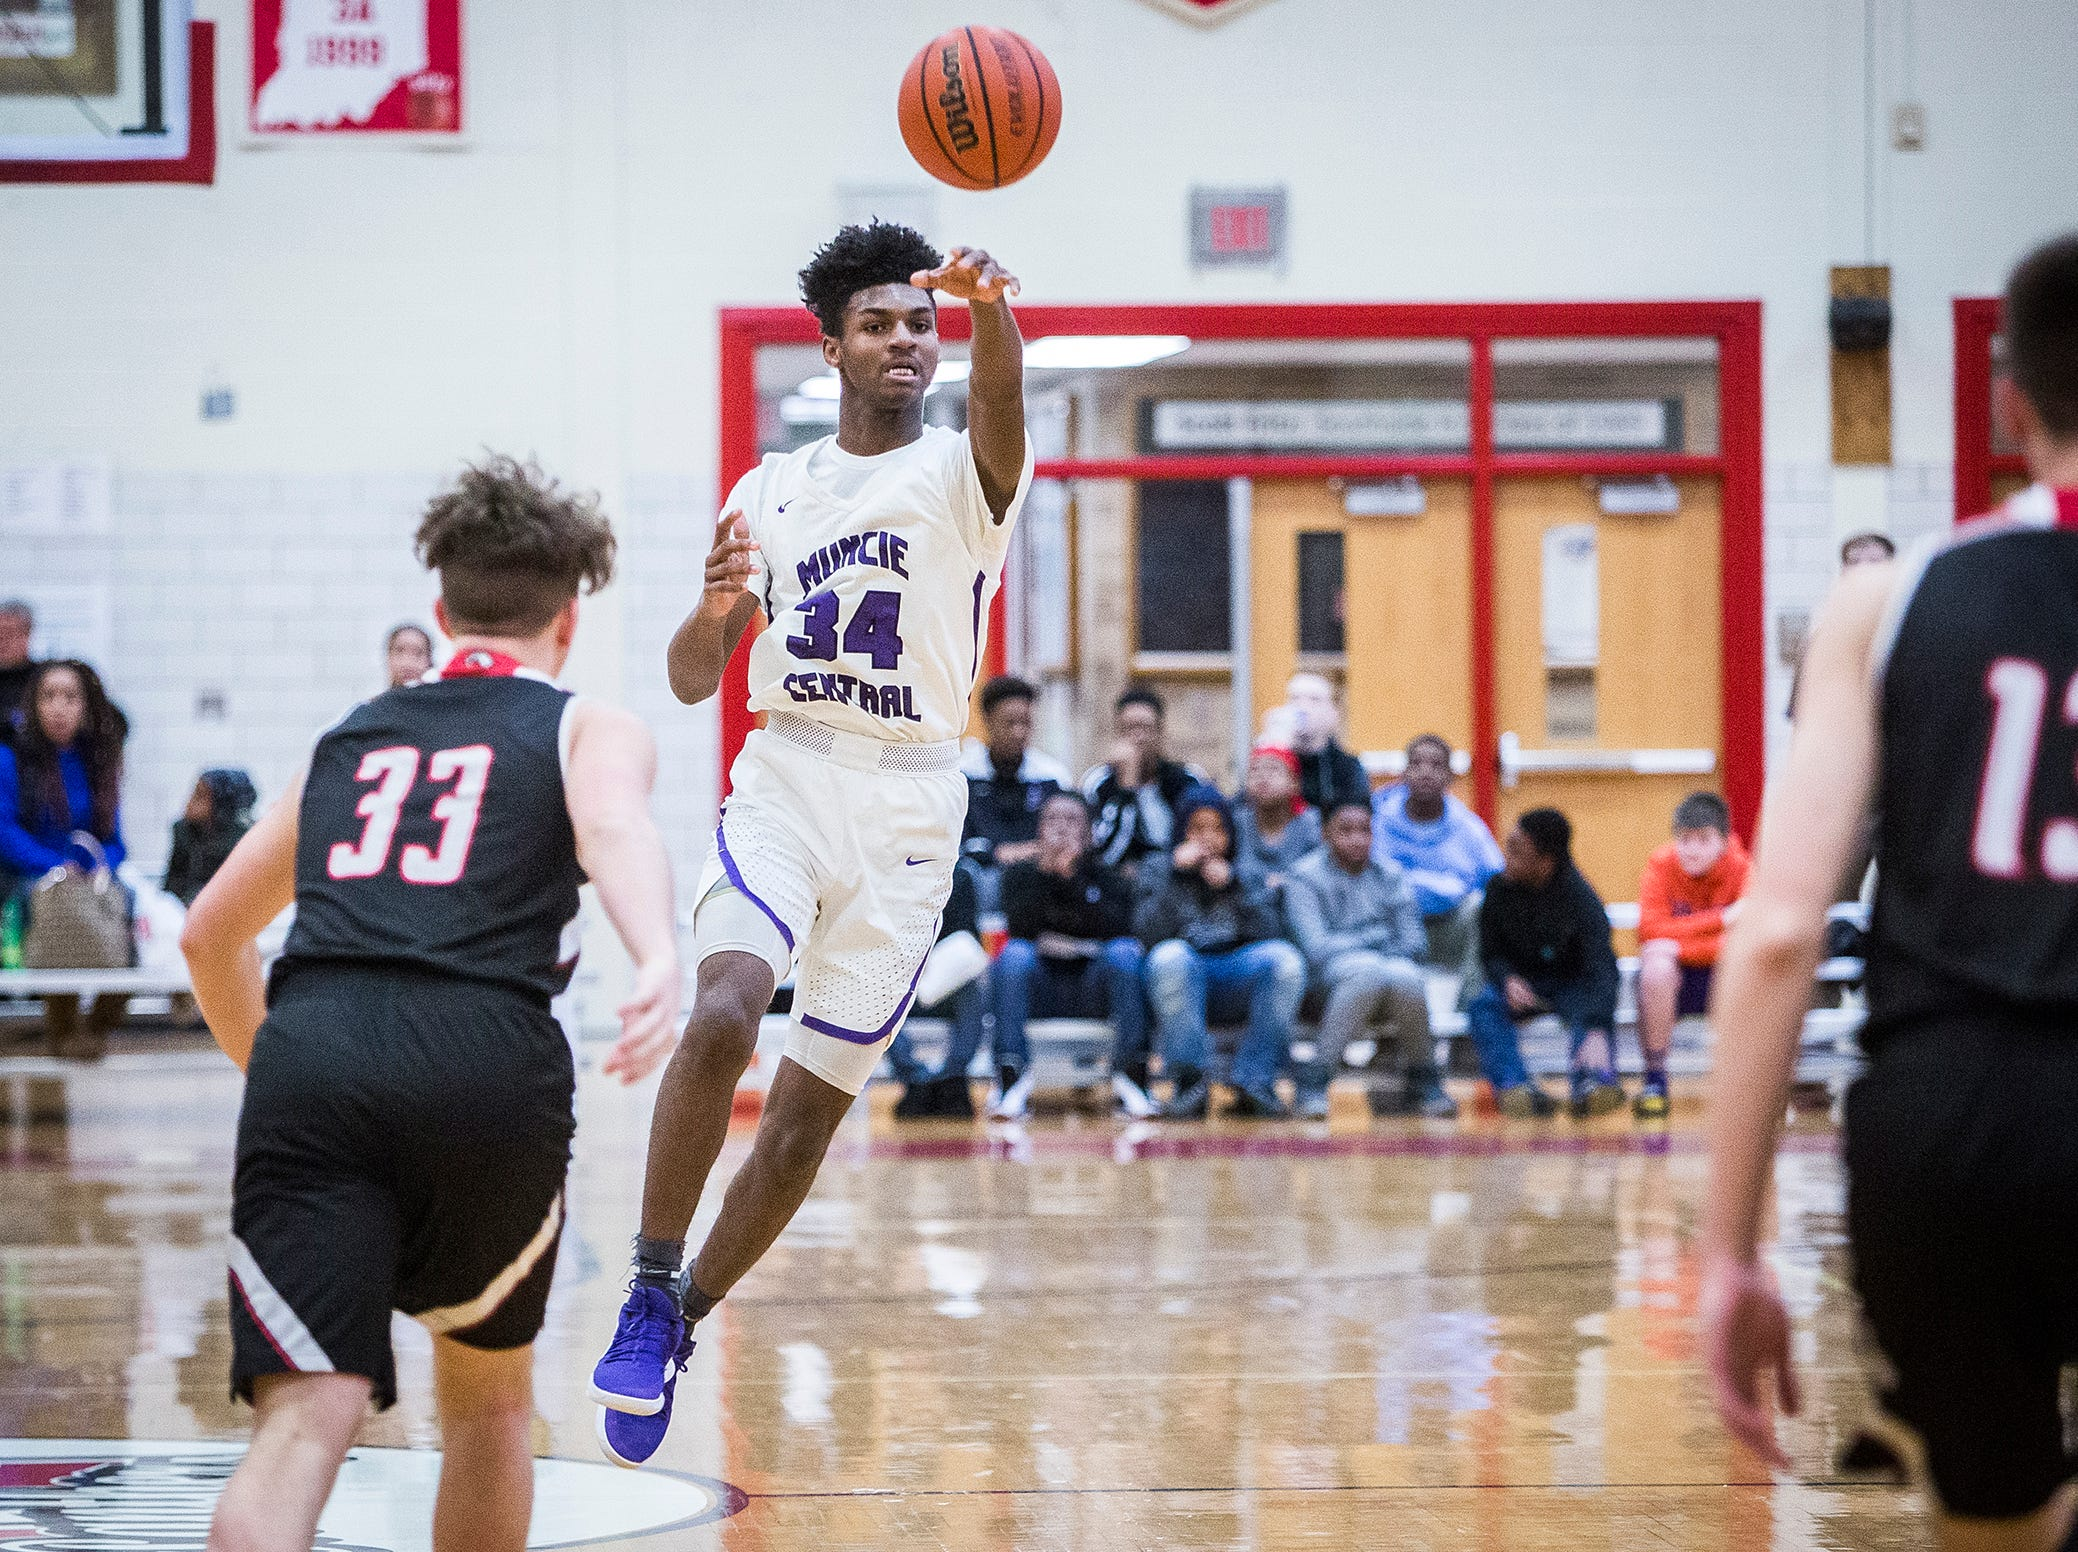 Central's Reggie Bass passes against Lafayette Jefferson during their game at Southside Middle School Friday, Jan. 4, 2019.